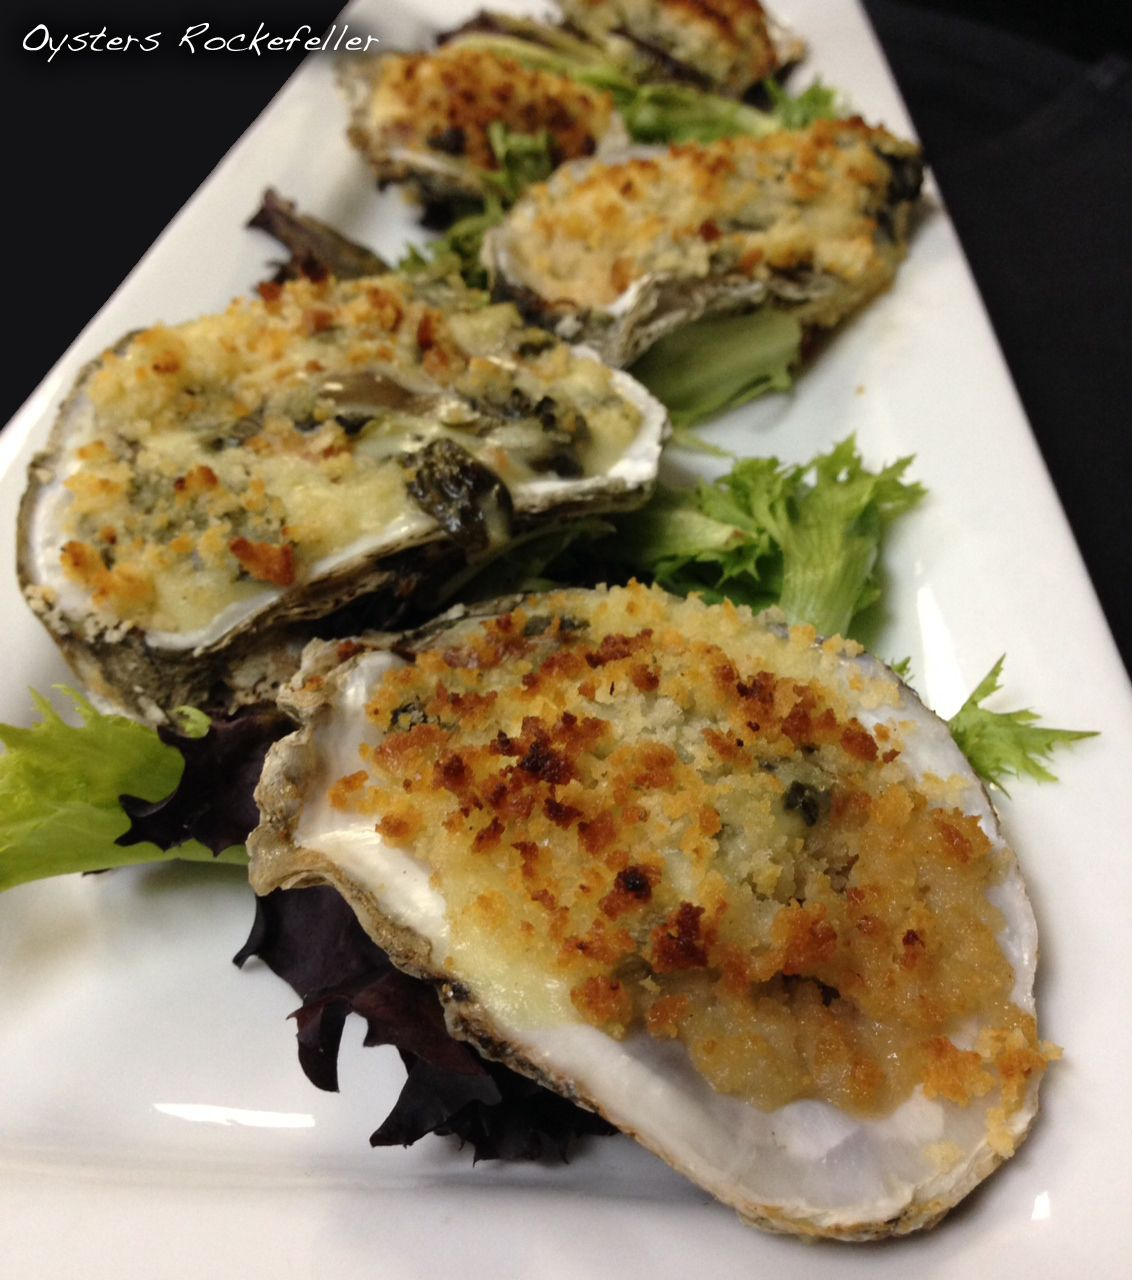 Oysters Rockefeller Oysters on the half shell topped with